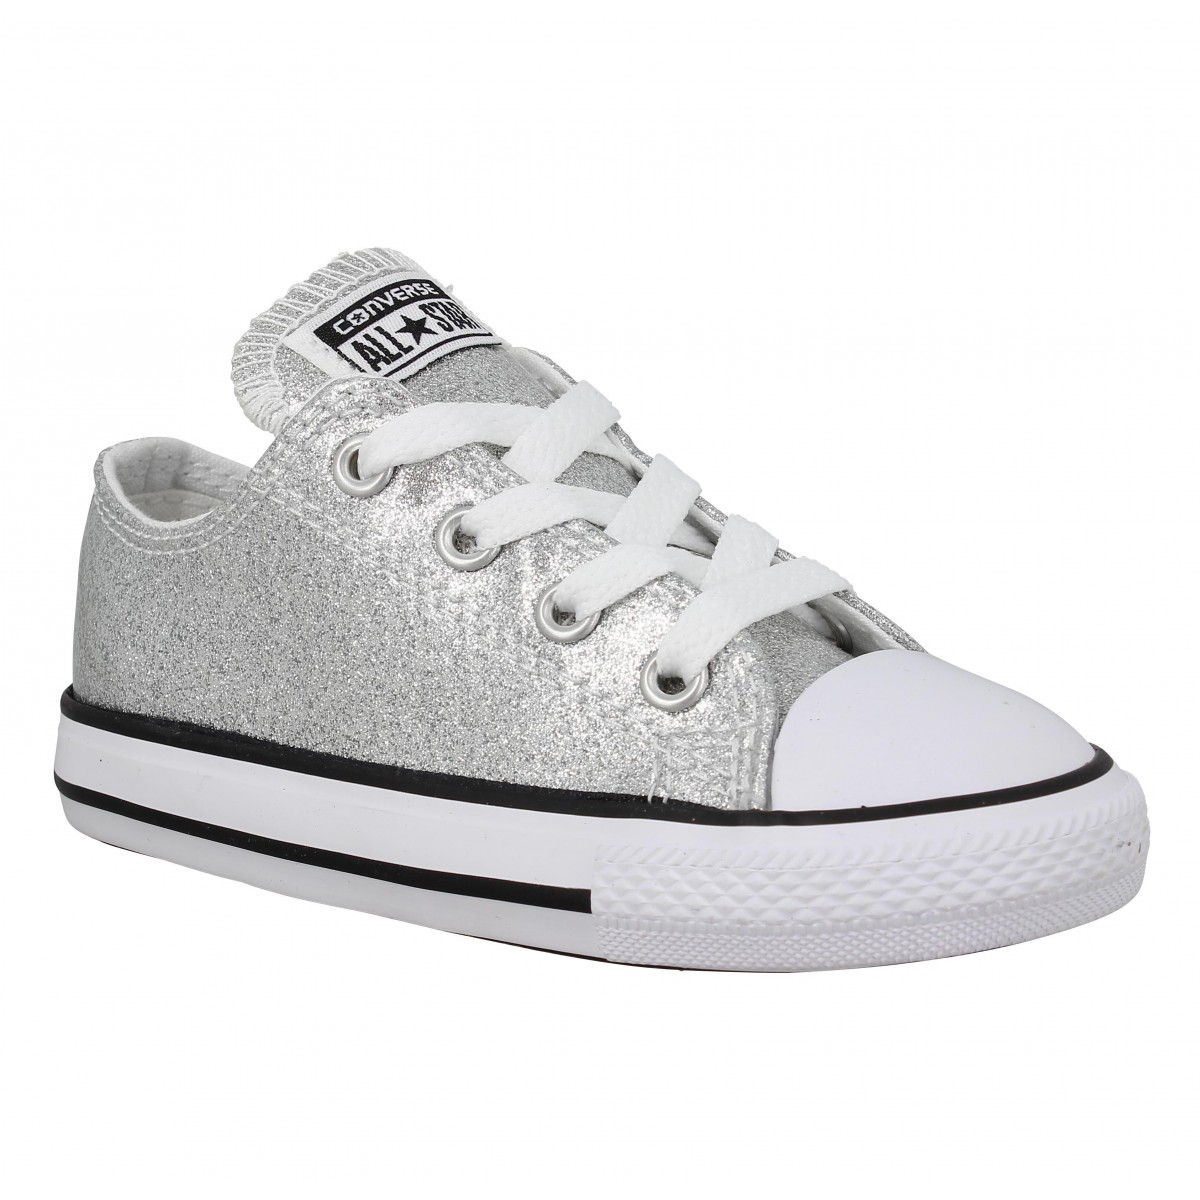 673ecb86be3bf Converse chuck taylor all star toile enfant silver enfants